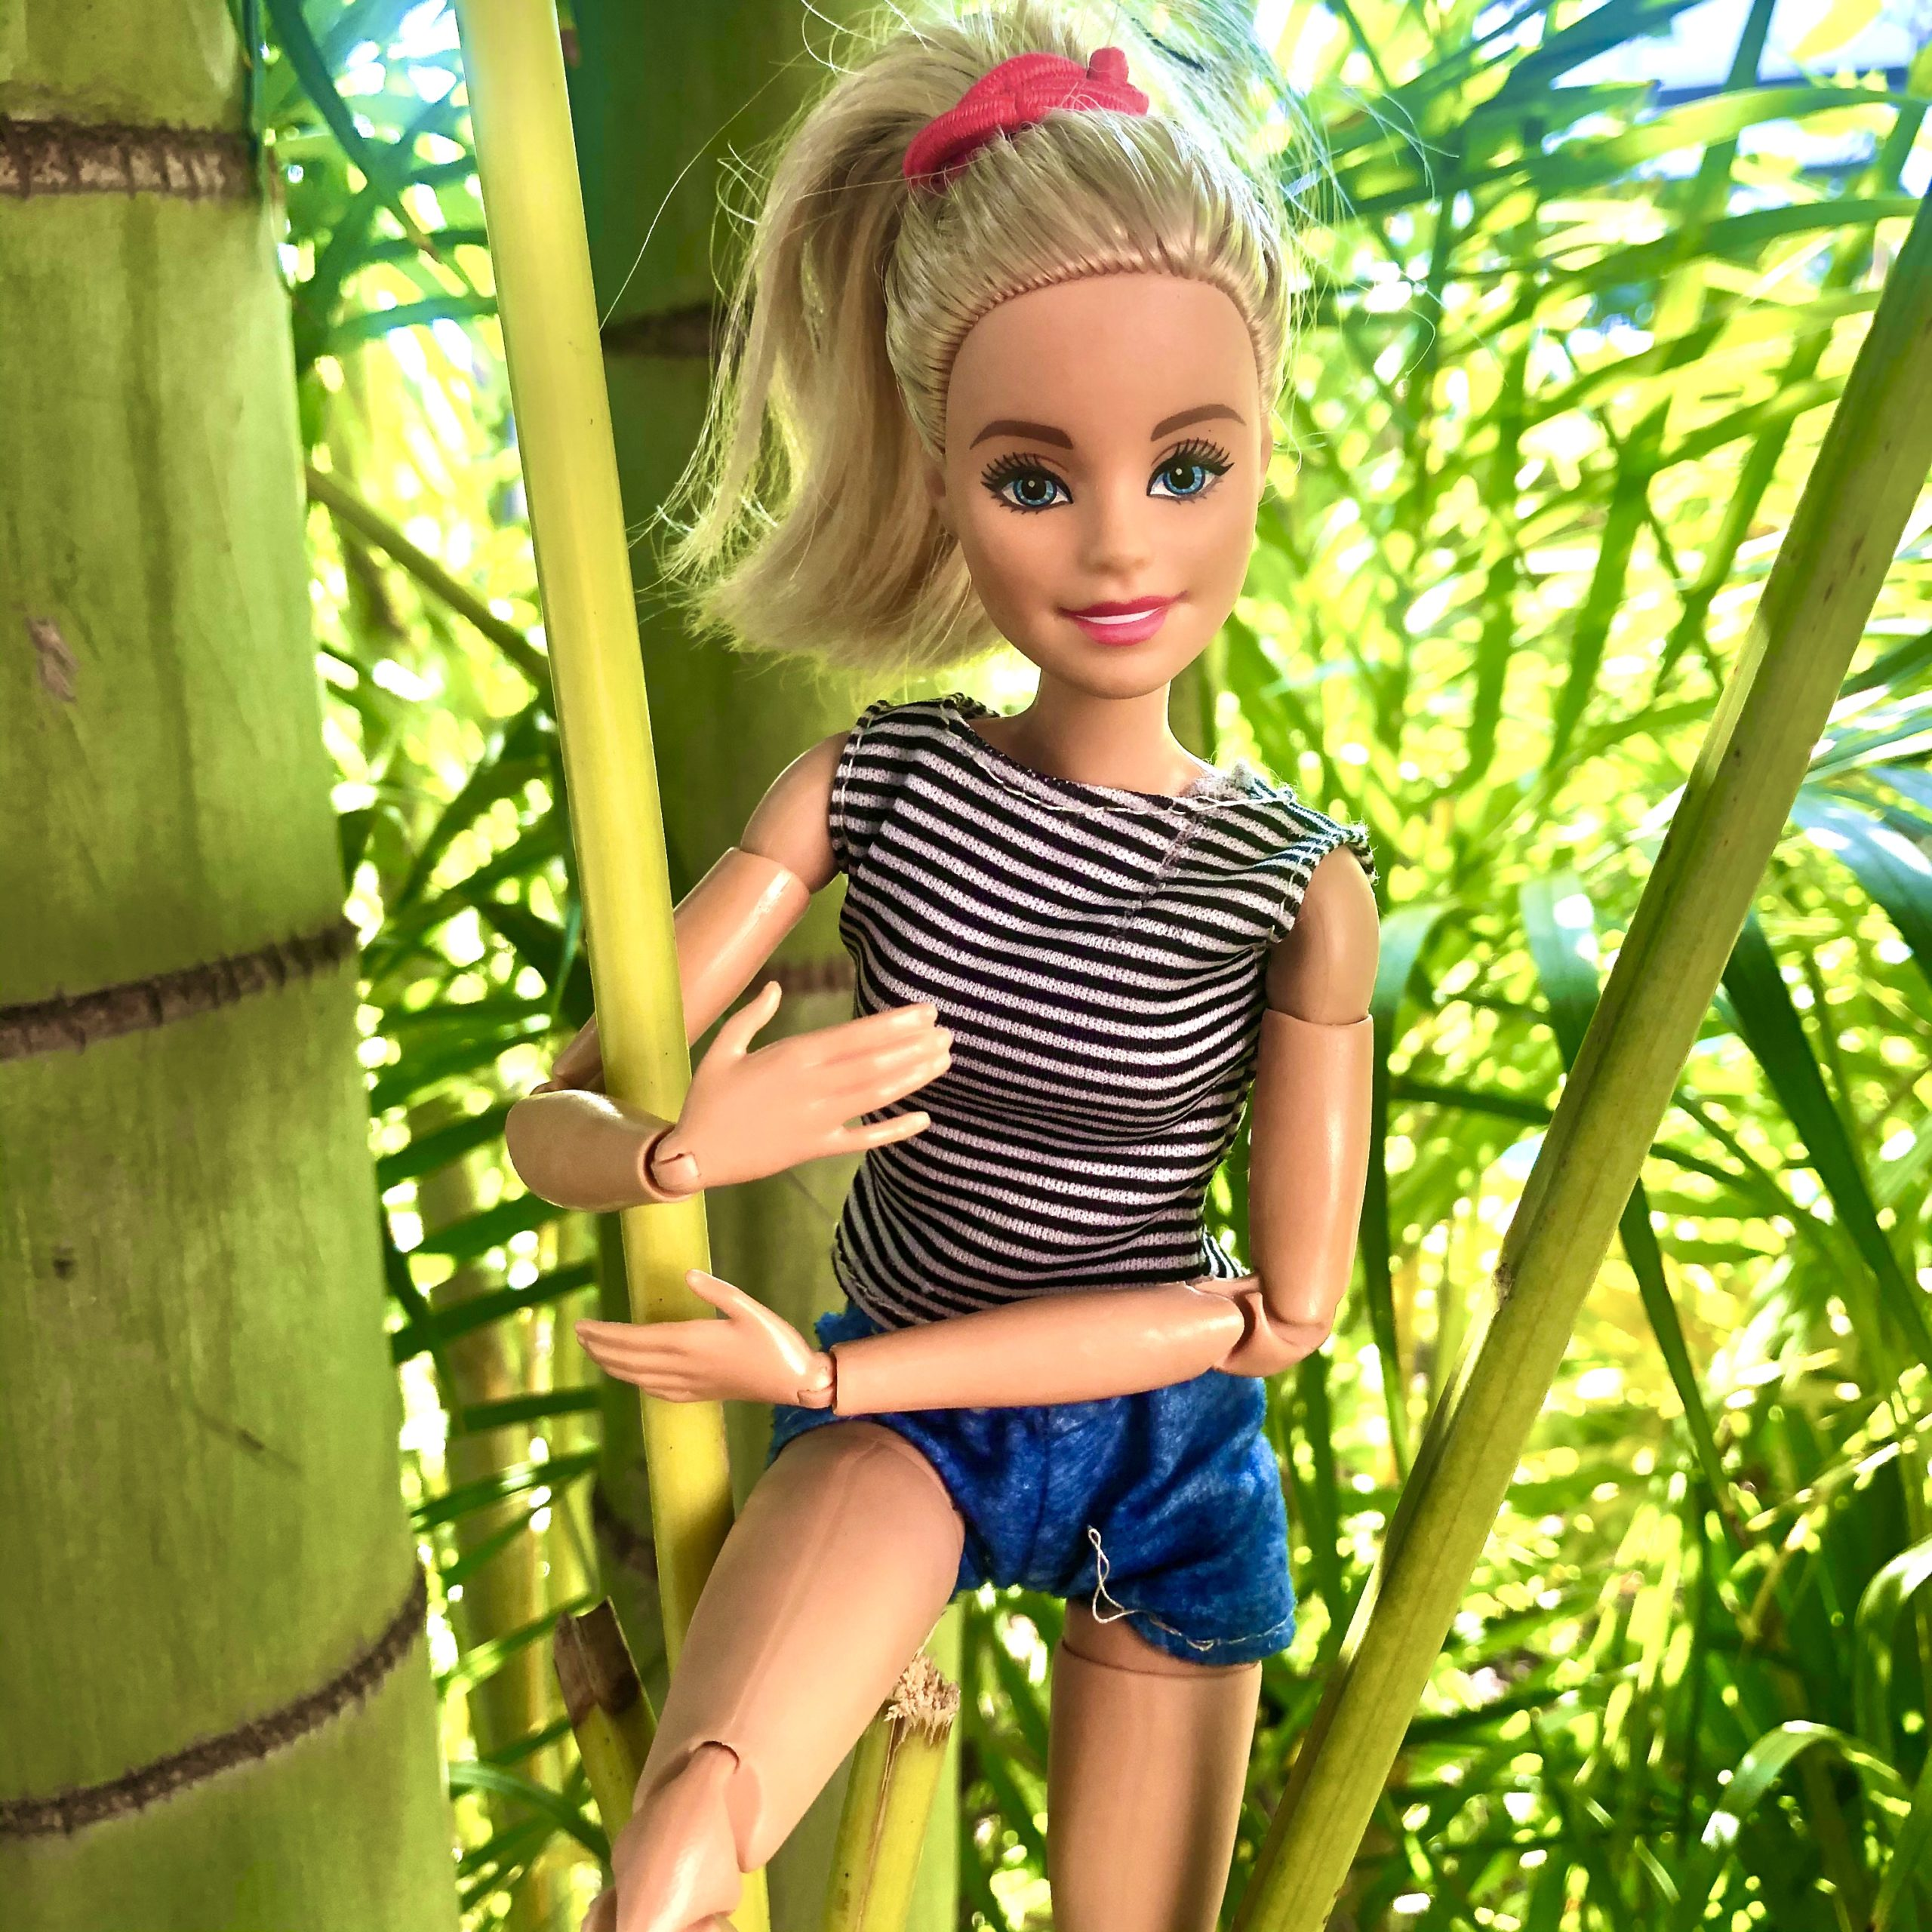 Barbie is in a tree for a Barbie children's story, The Hike Gone Bad